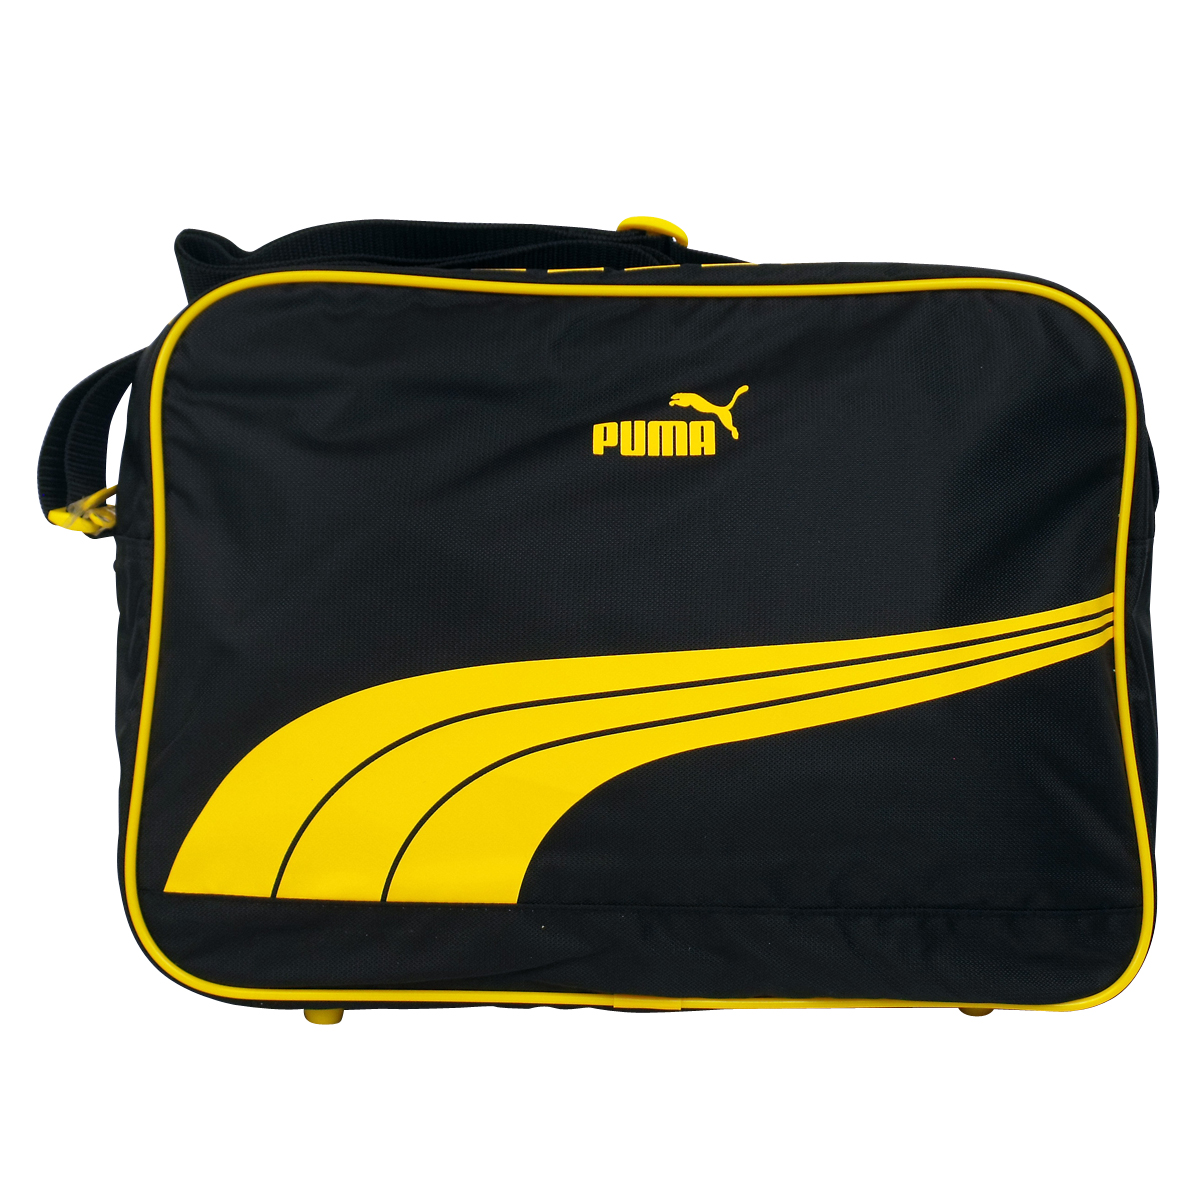 puma bags yellow on sale   OFF52% Discounts bc39418302e31